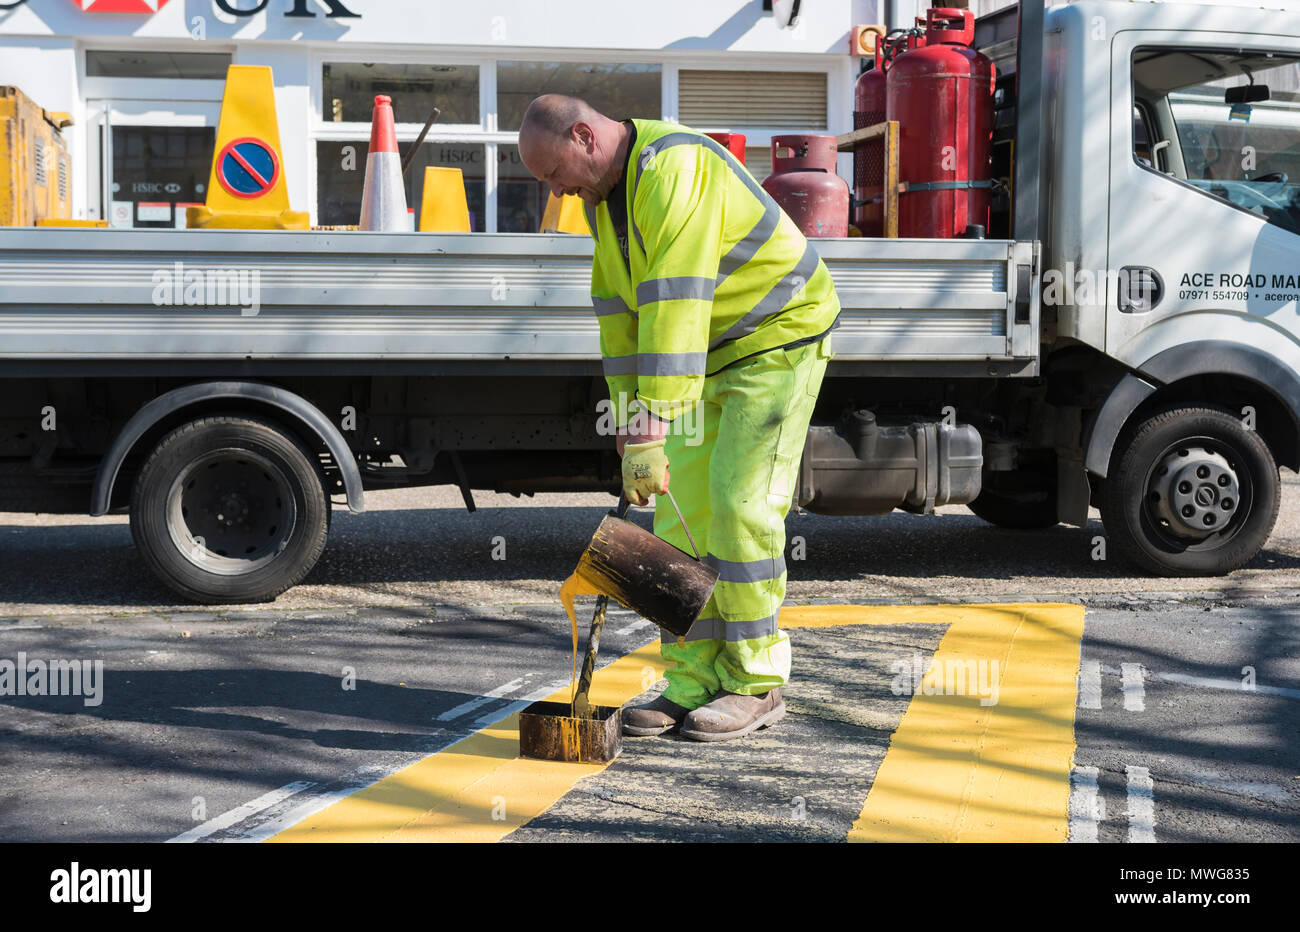 Worker painting yellow line on a road in England, UK. Road line painter. - Stock Image